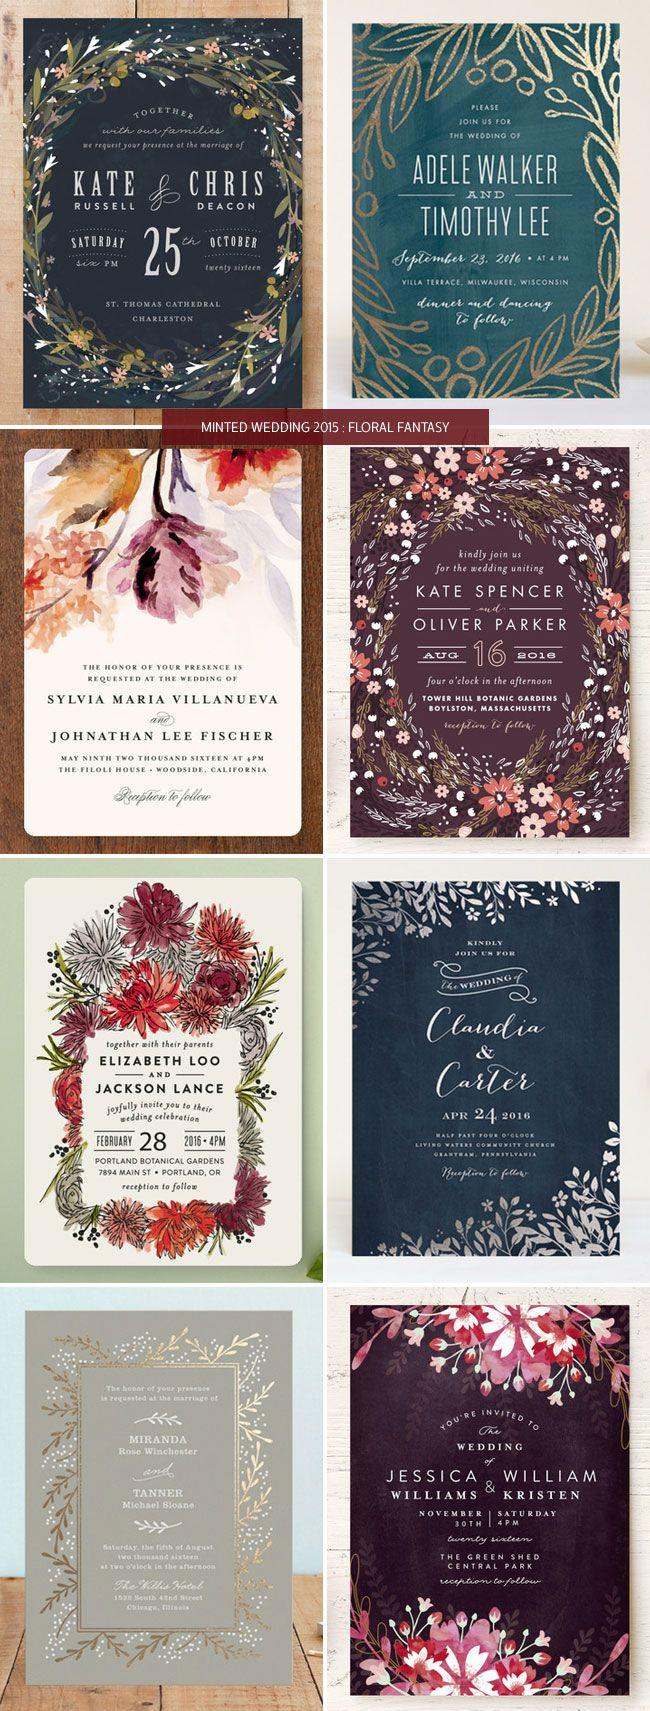 Wedding - Minted Wedding Invitations 2015 : Floral - Invitation Crush